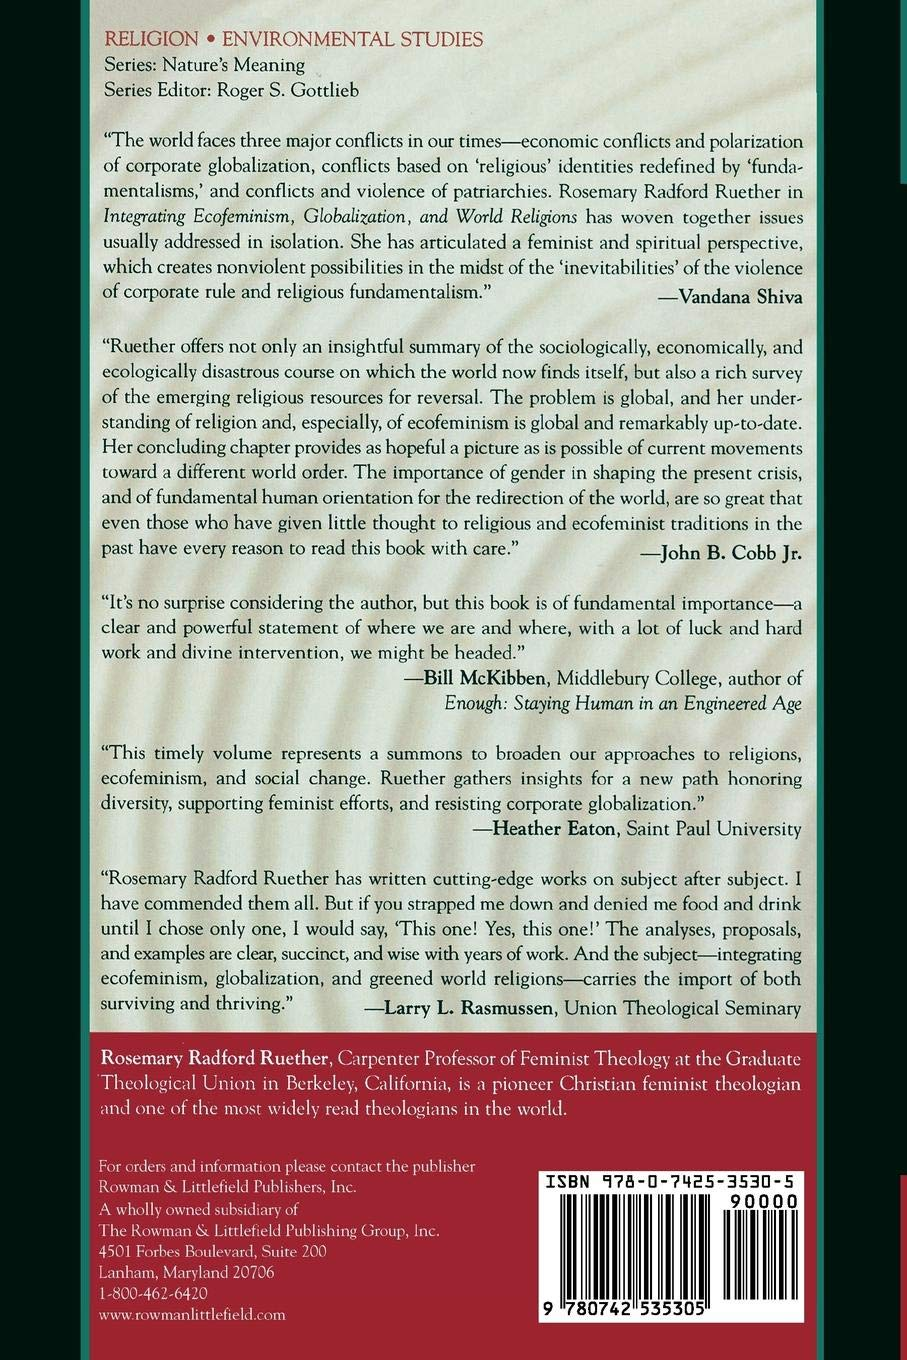 Buy Integrating Ecofeminism, Globalization, and World Religions (Nature's  Meaning) Book Online at Low Prices in India | Integrating Ecofeminism, ...